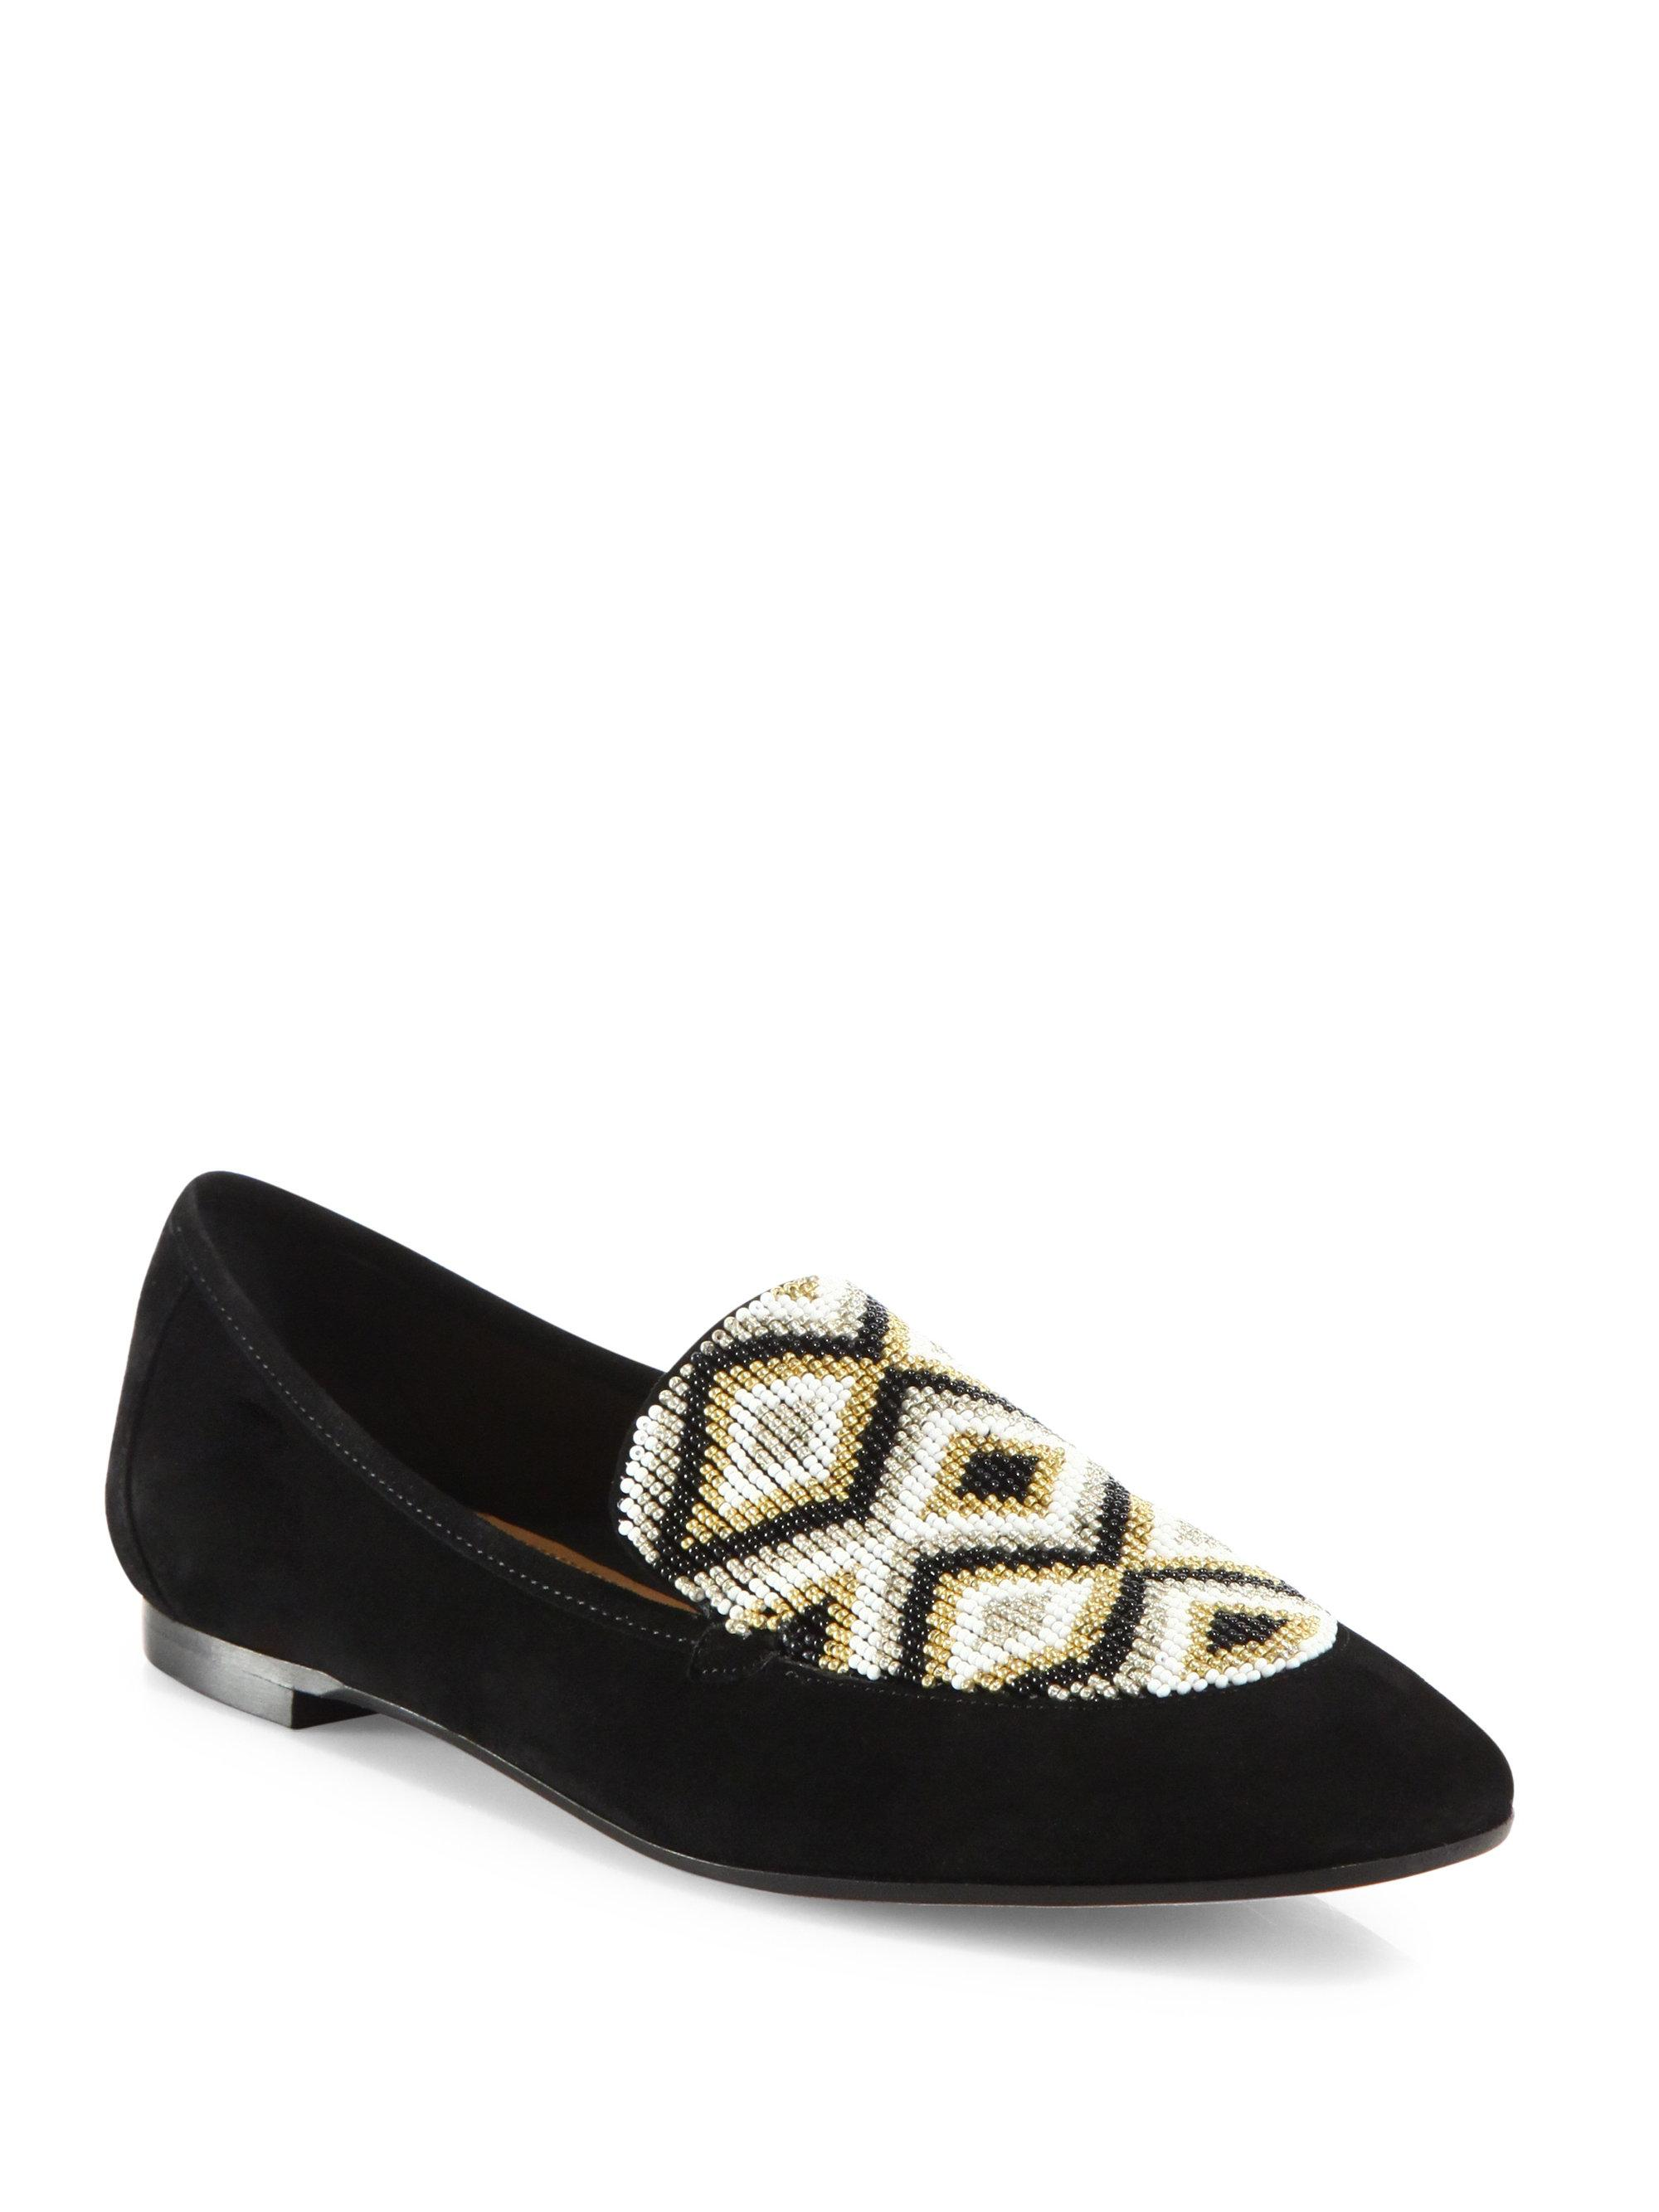 Chloé Black Nocturnal Loafers